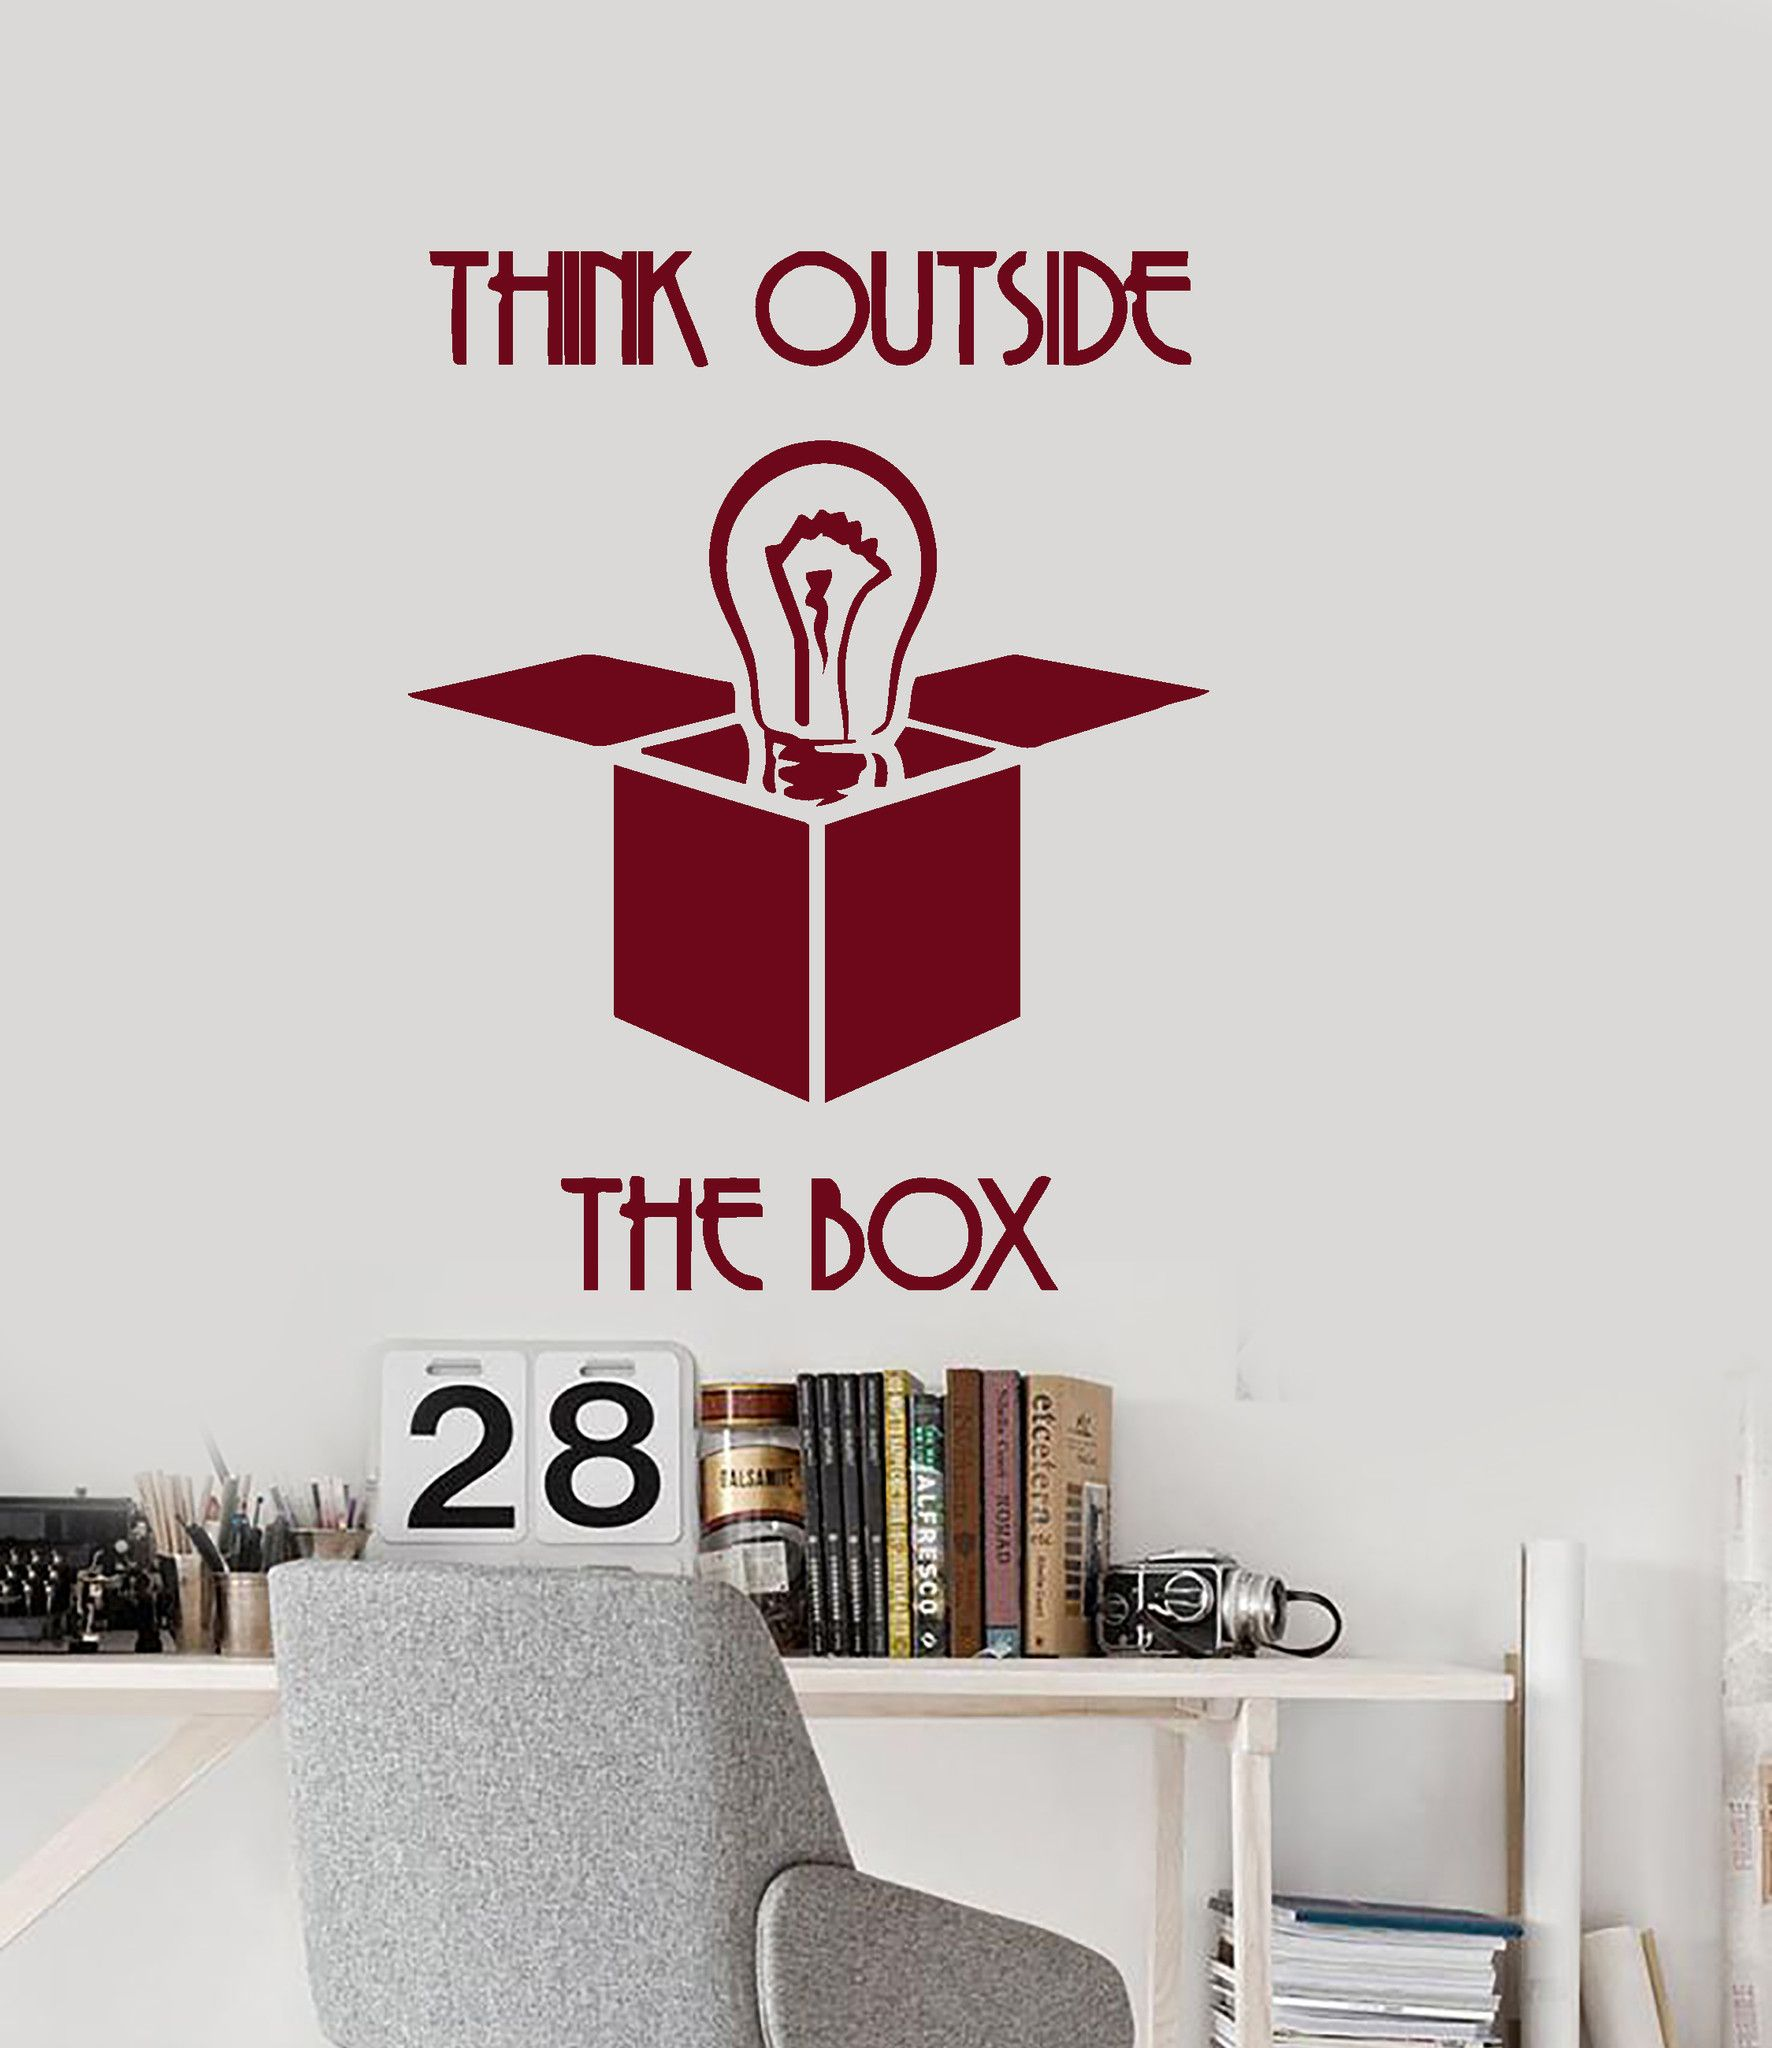 office wall hangings. Wall Vinyl Decal Quotes Think Outside The Box Office Decor Unique Gift Z3956 Hangings